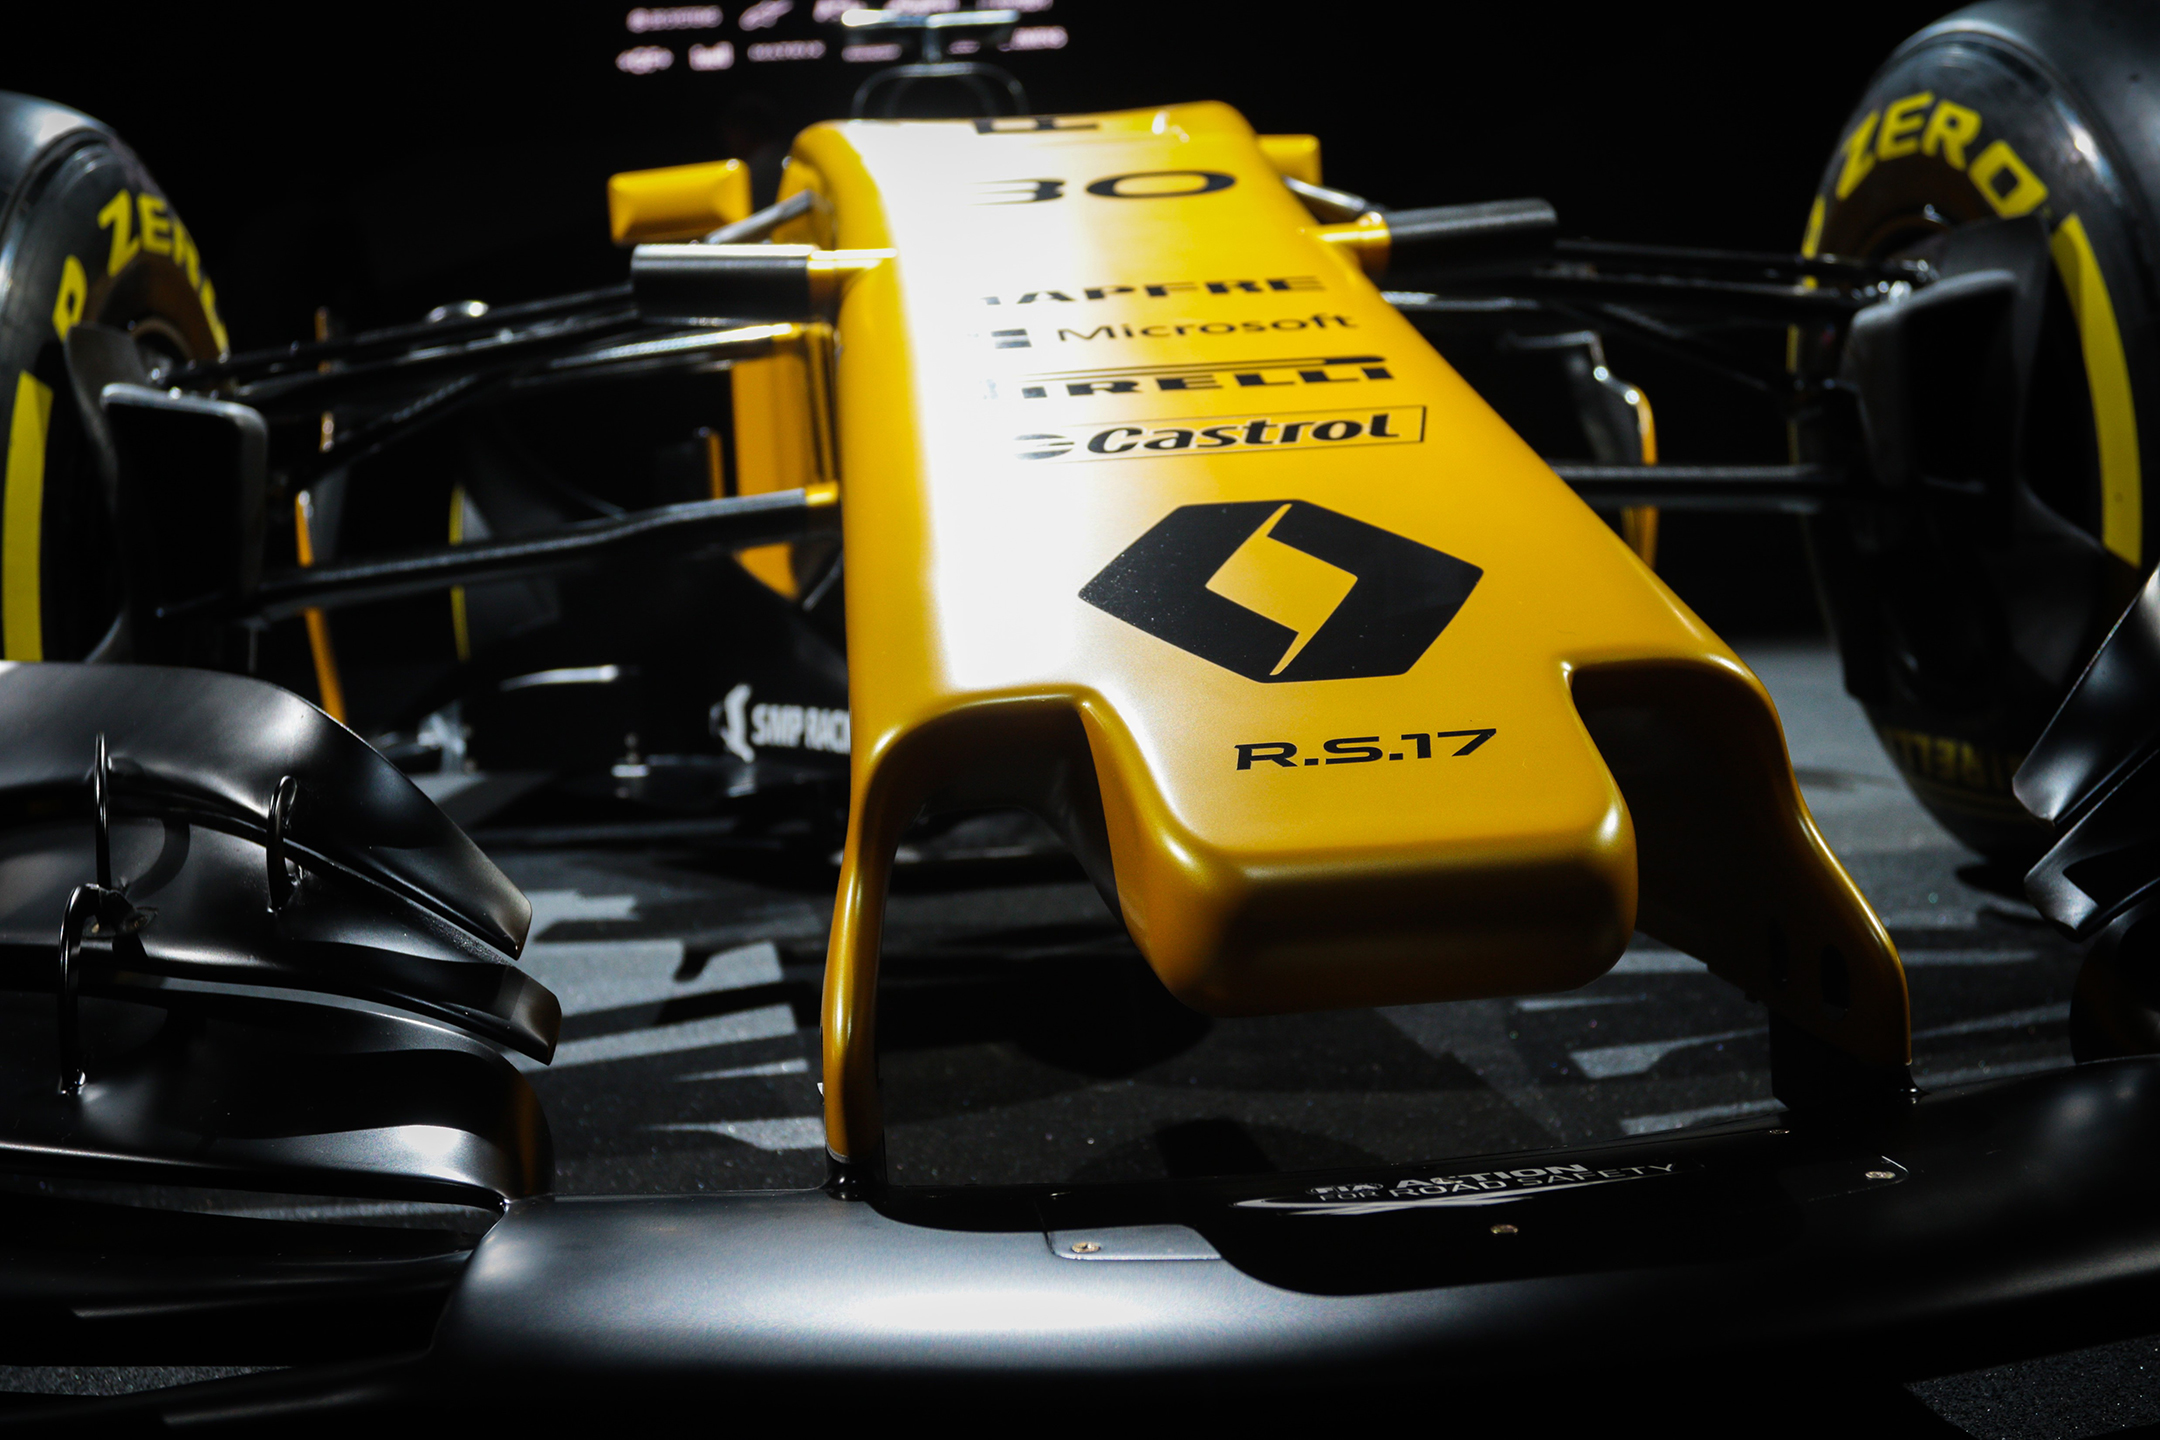 F1 R.S.17 - launch - reveal livery - zoom - front